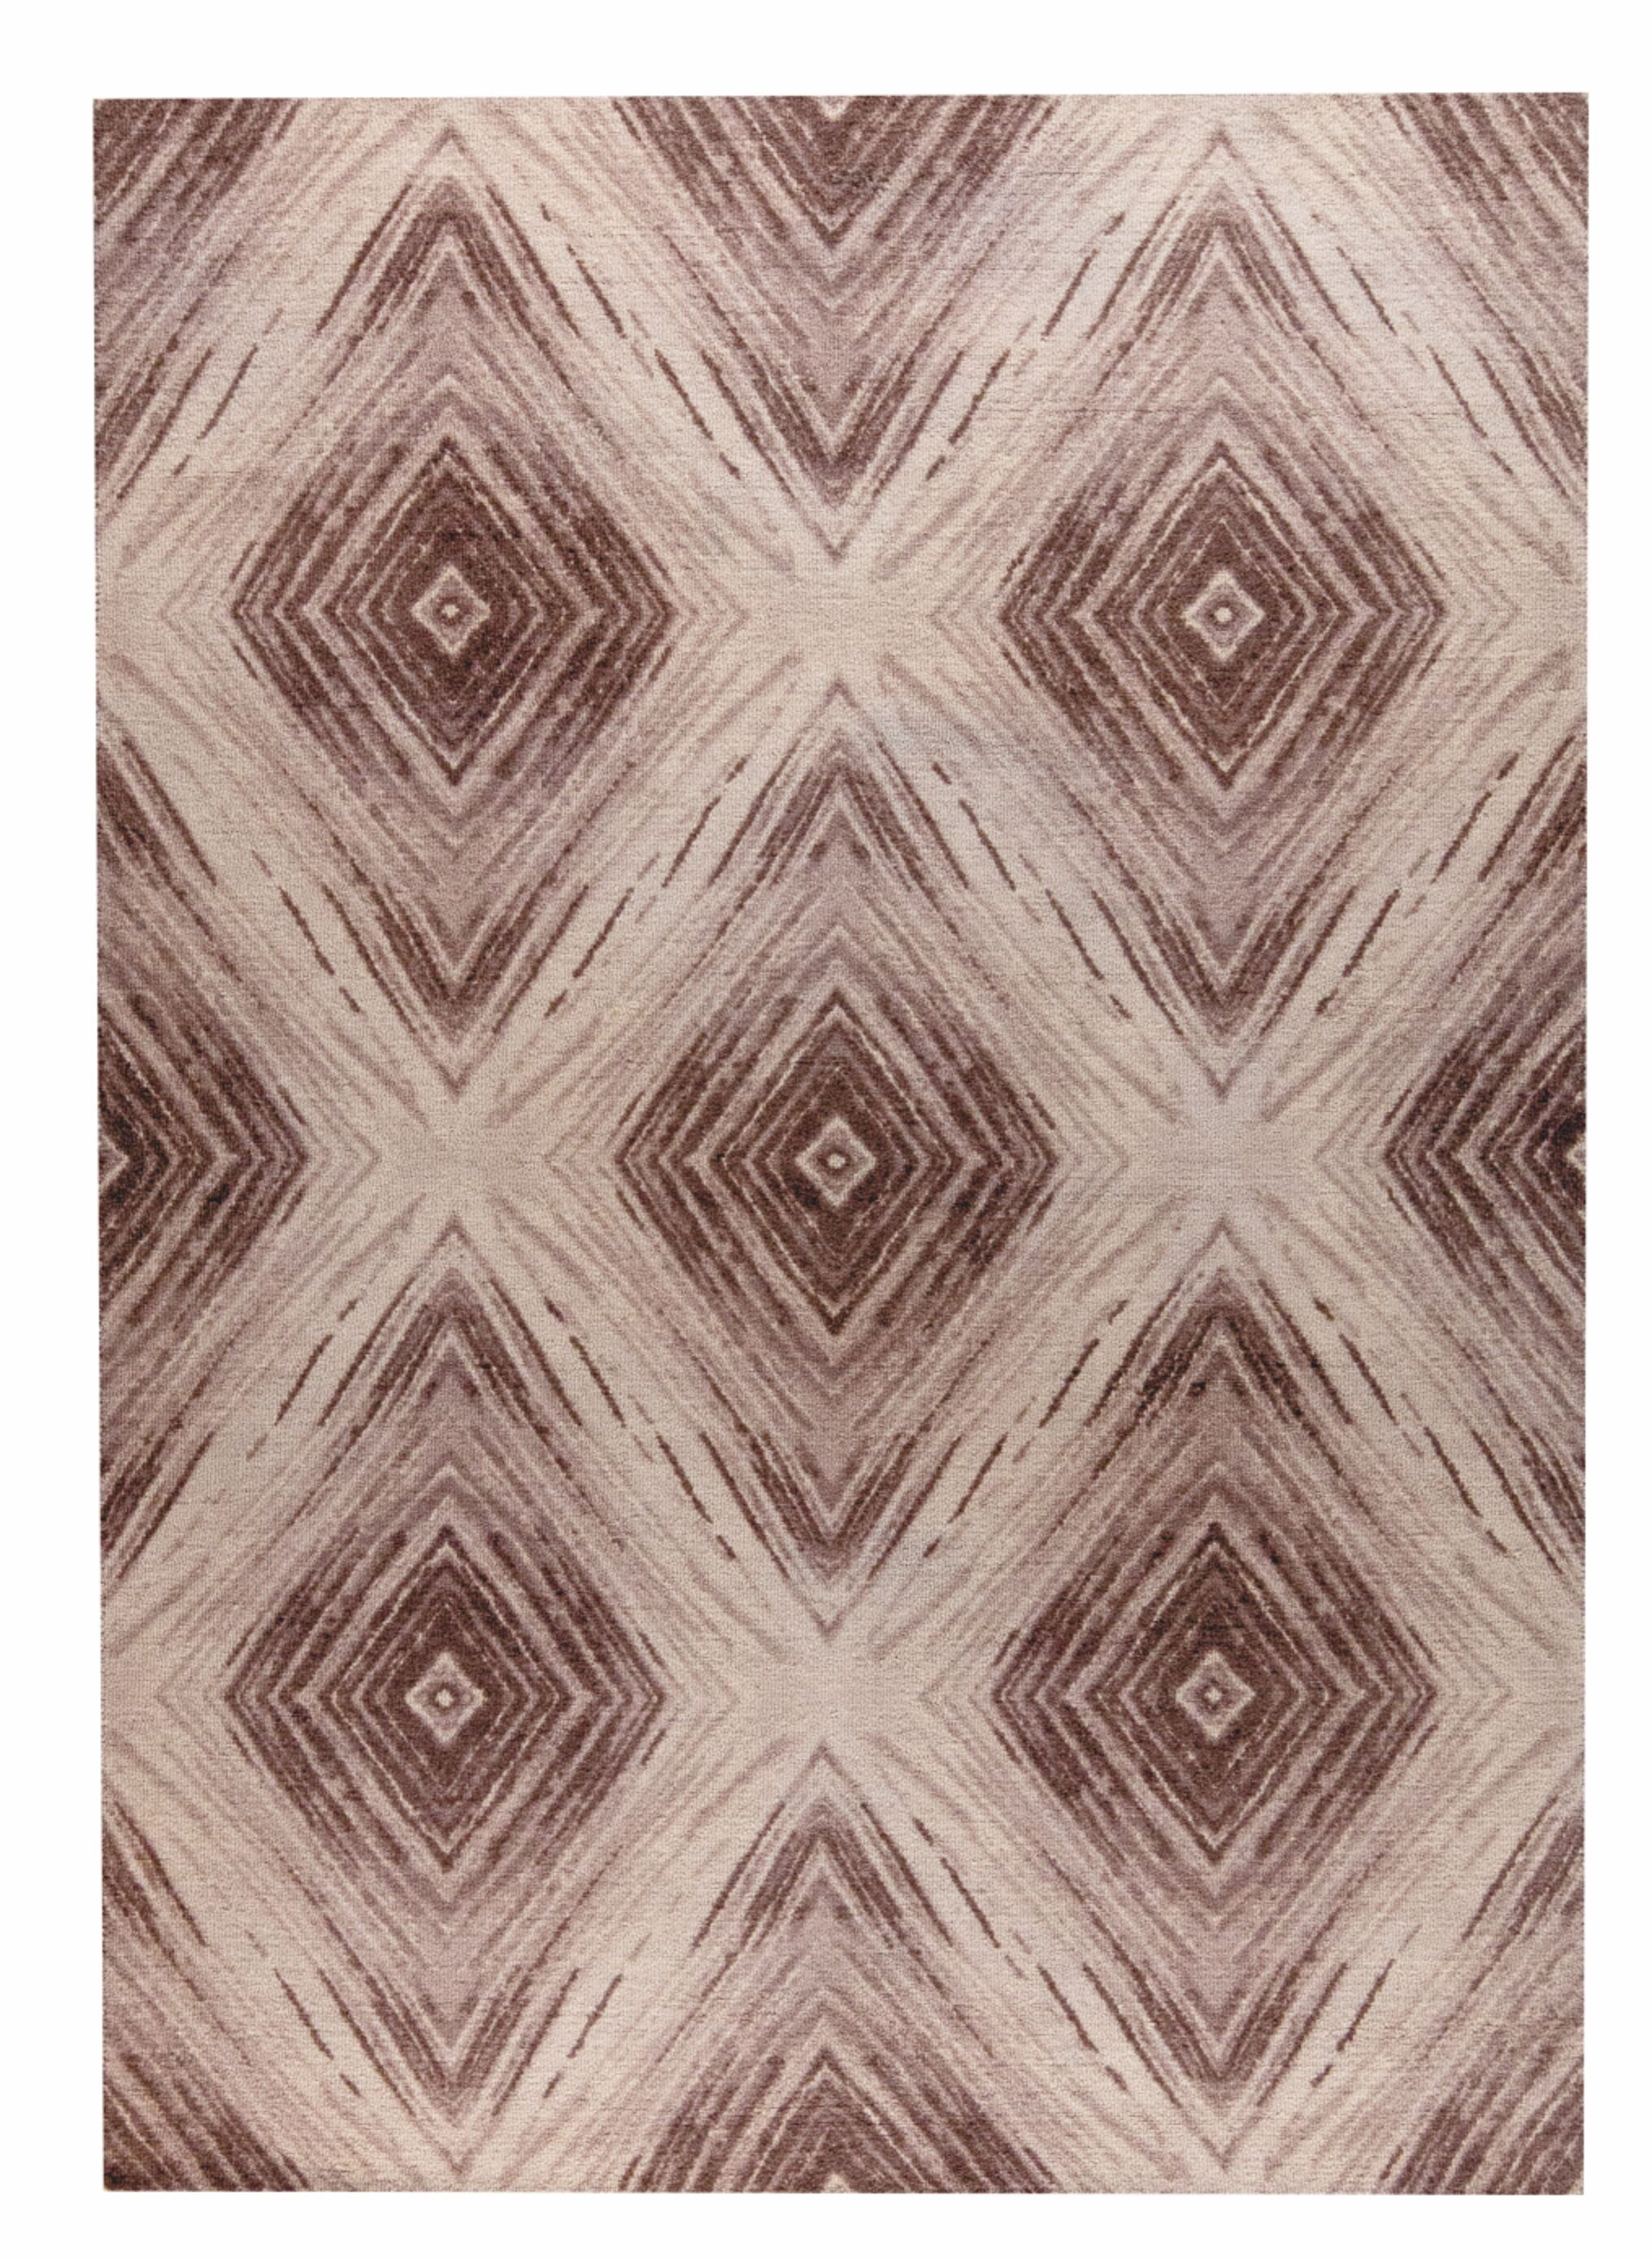 Lansing Hand-Woven Brown Area Rug Rug Size: 5' x 8'